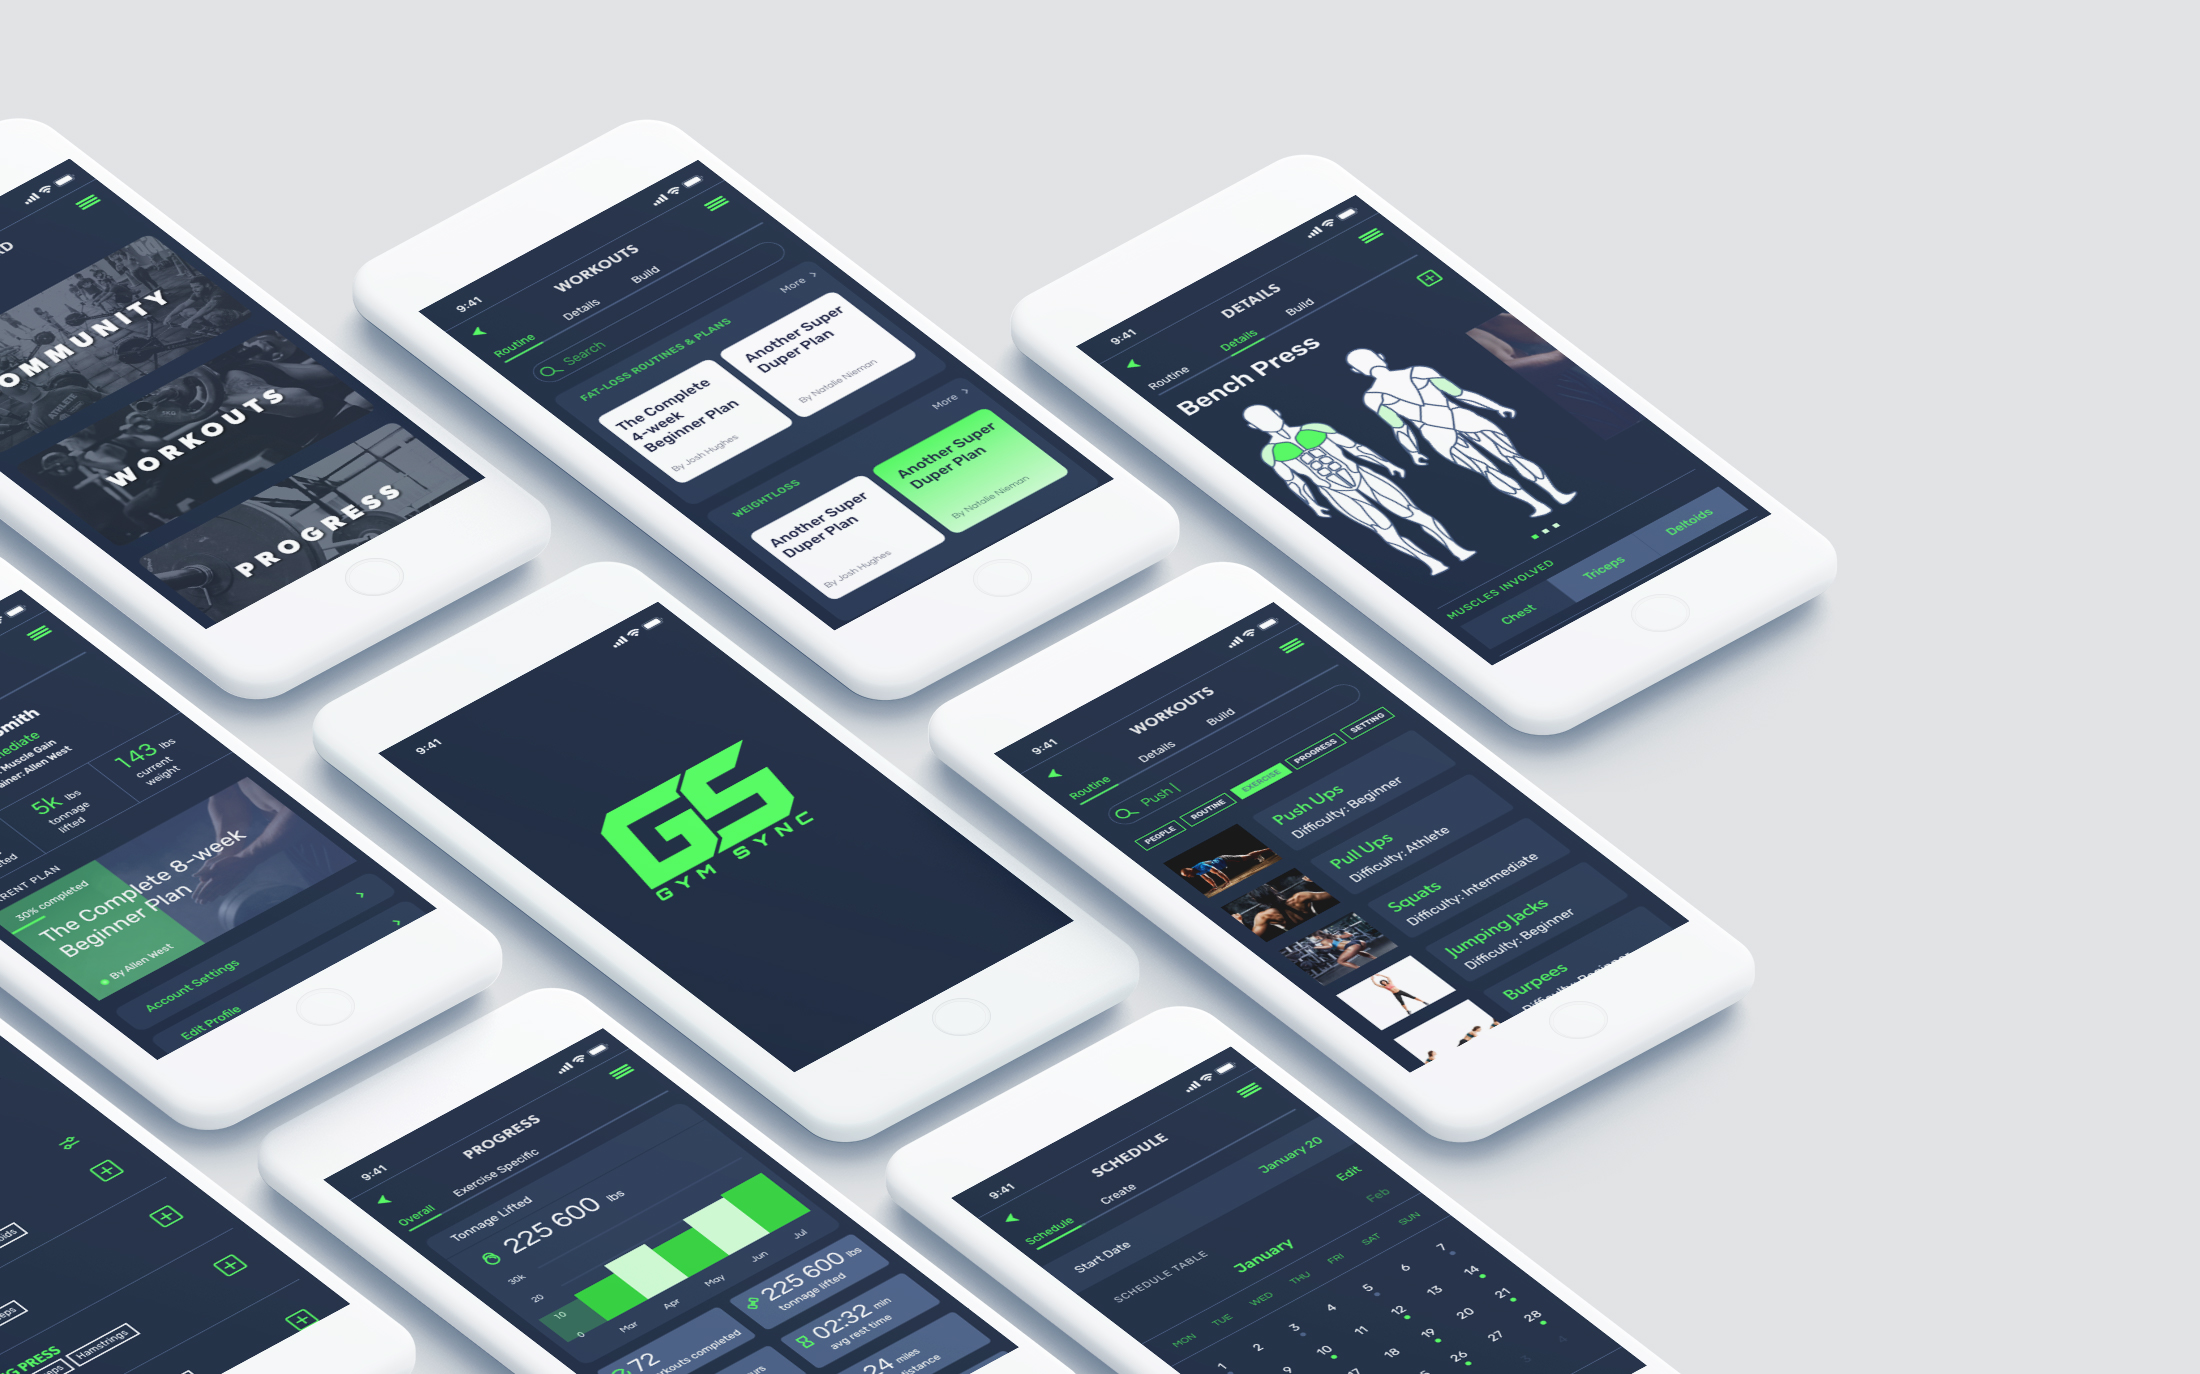 Gym Sync workout app isometric mockup design showcase